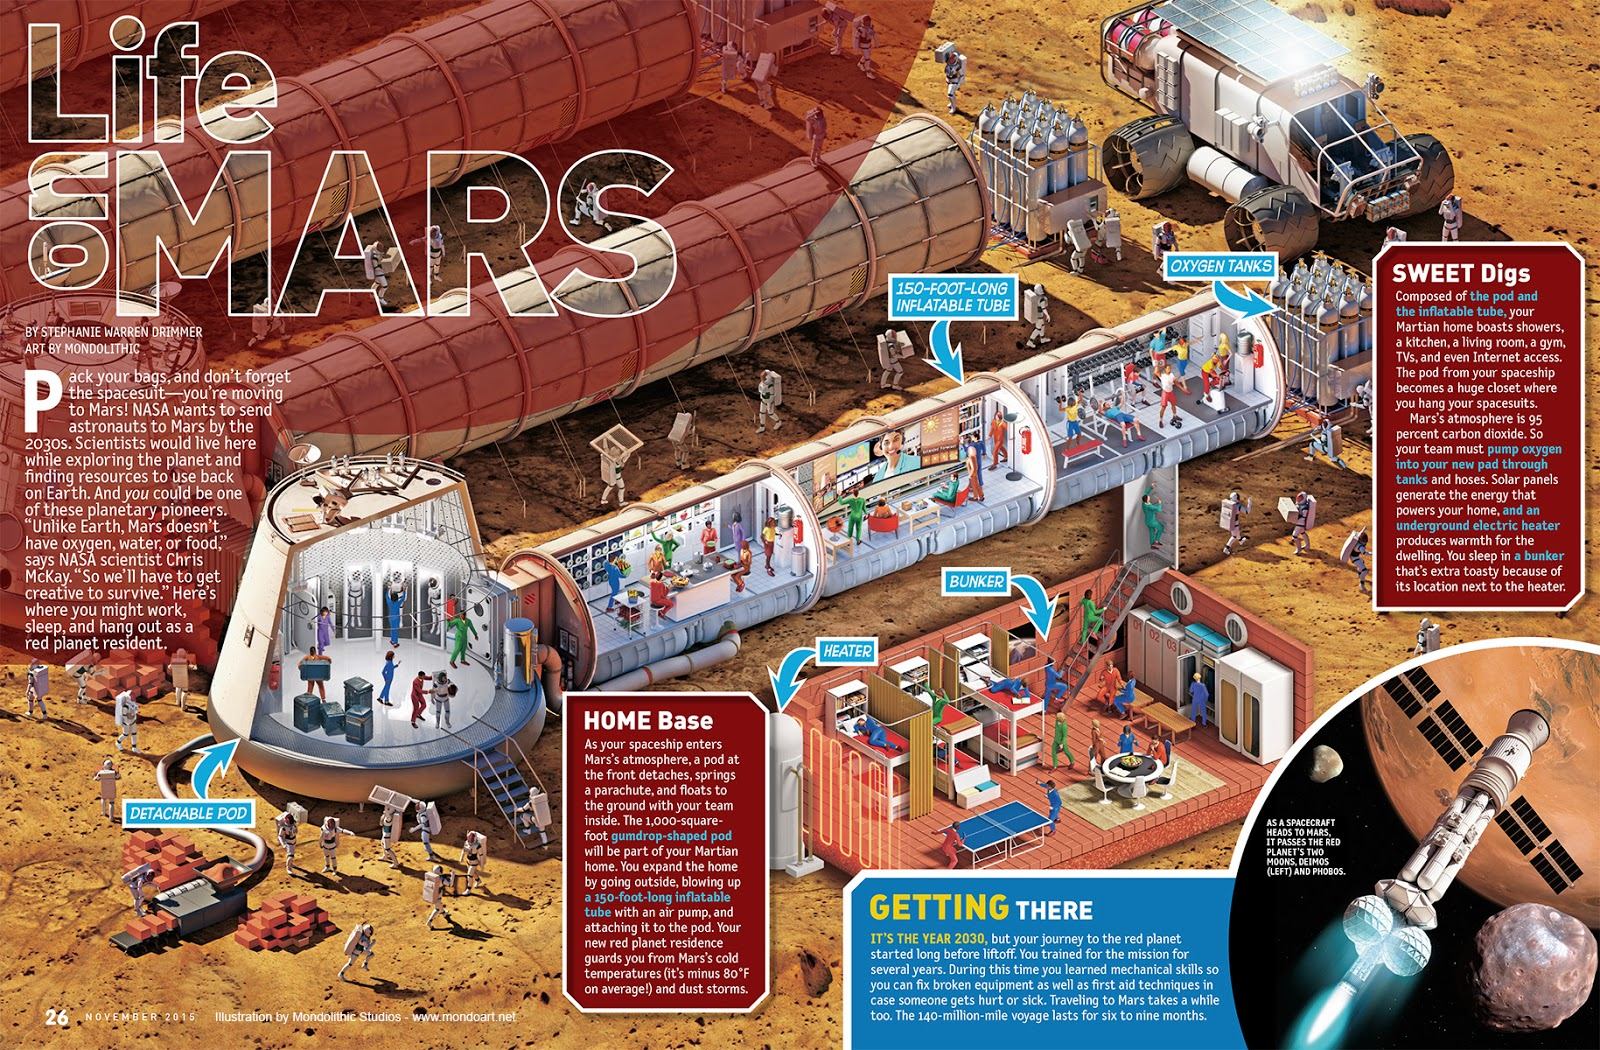 mars-base-illustration-1-for-national-geographic-kids-magazine